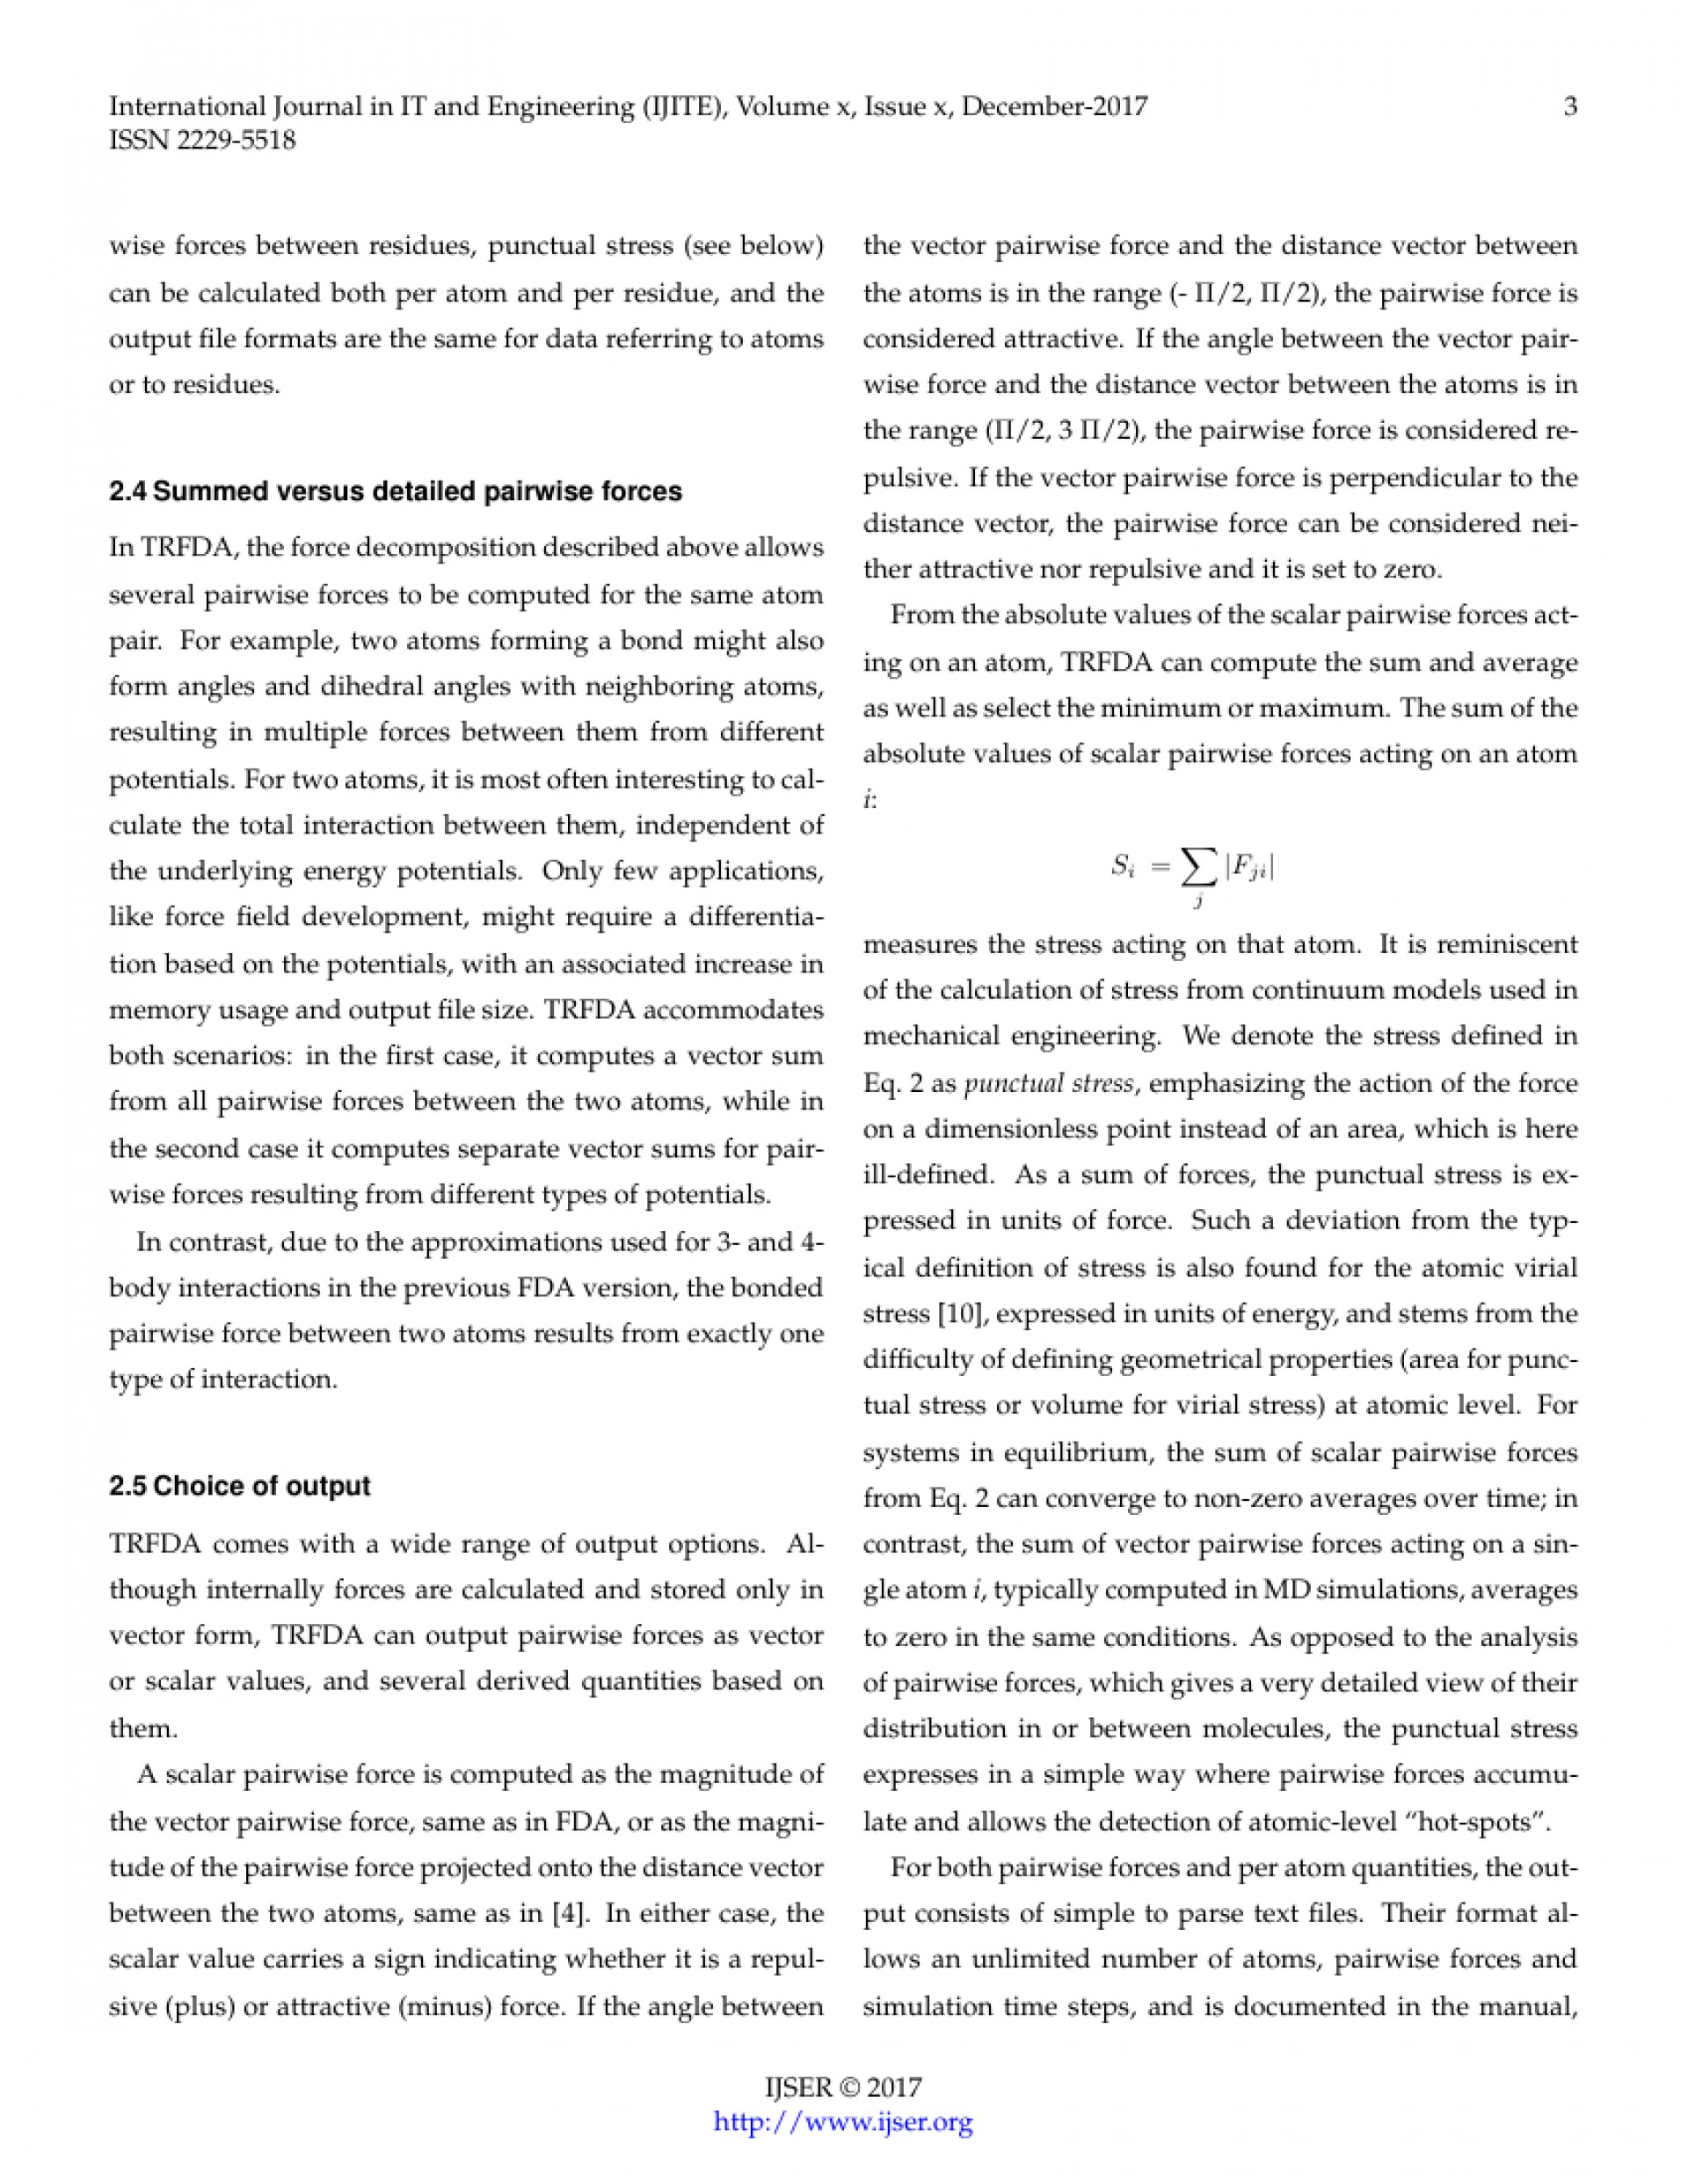 002 Article Research Paper Ieee Format Remarkable 2017 1920